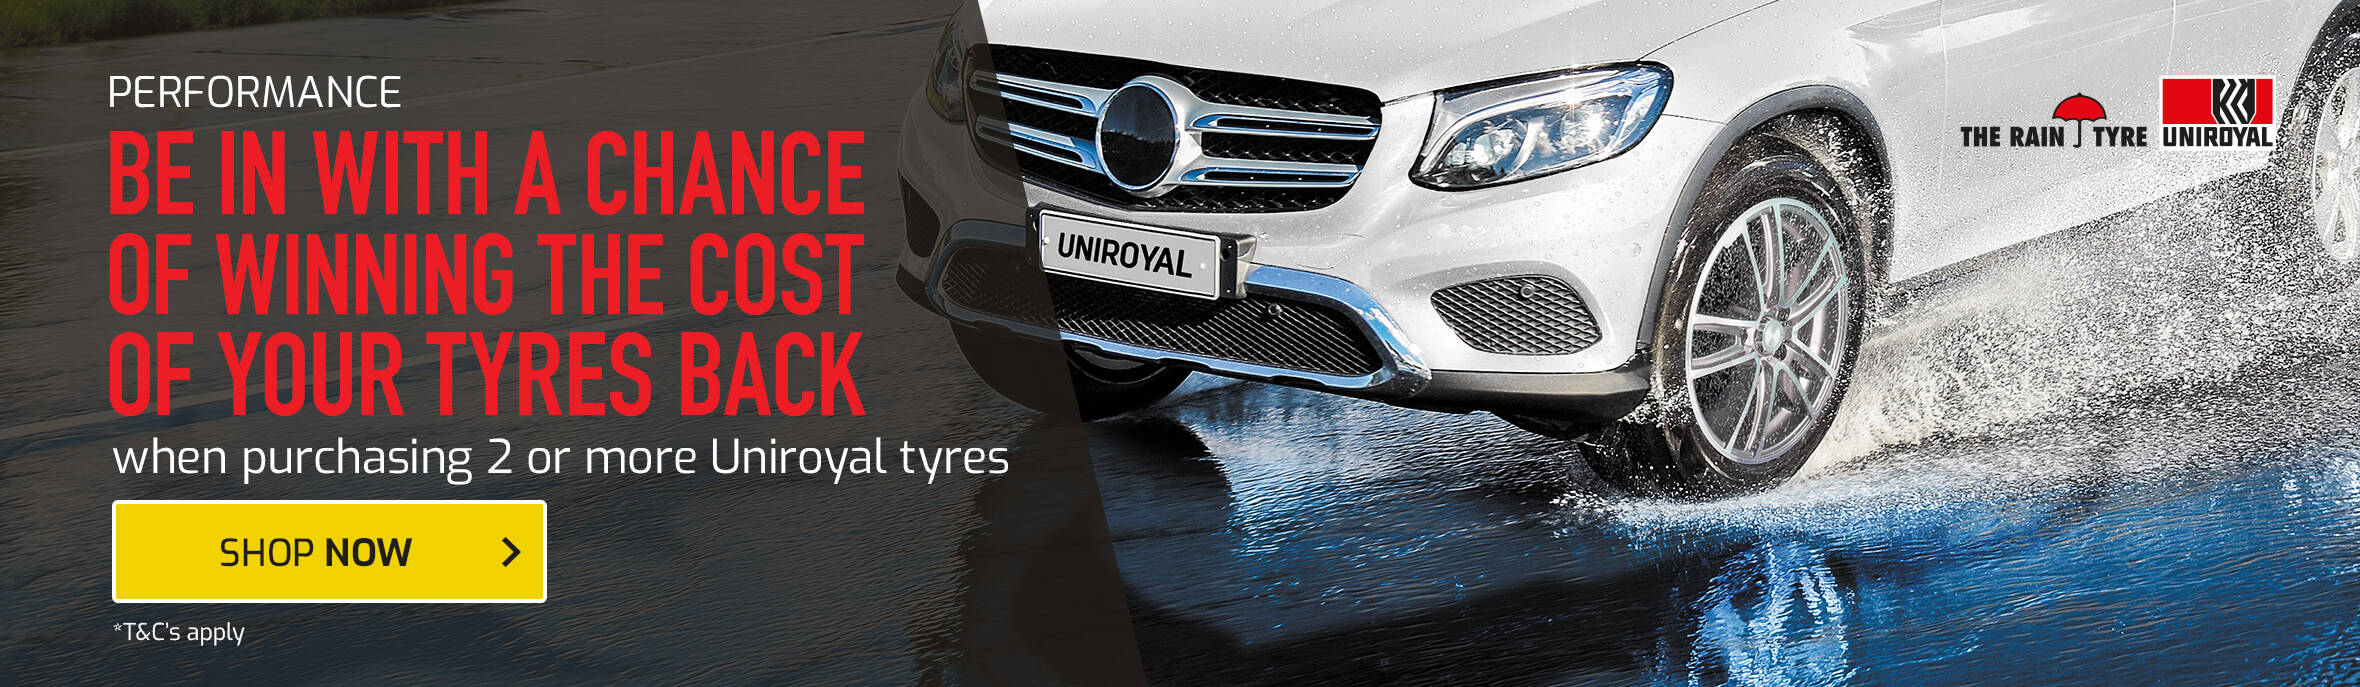 Be in With a Chance of Winning the Cost of Your Tyres Back When You Buy 2 or More Uniroyal Tyres